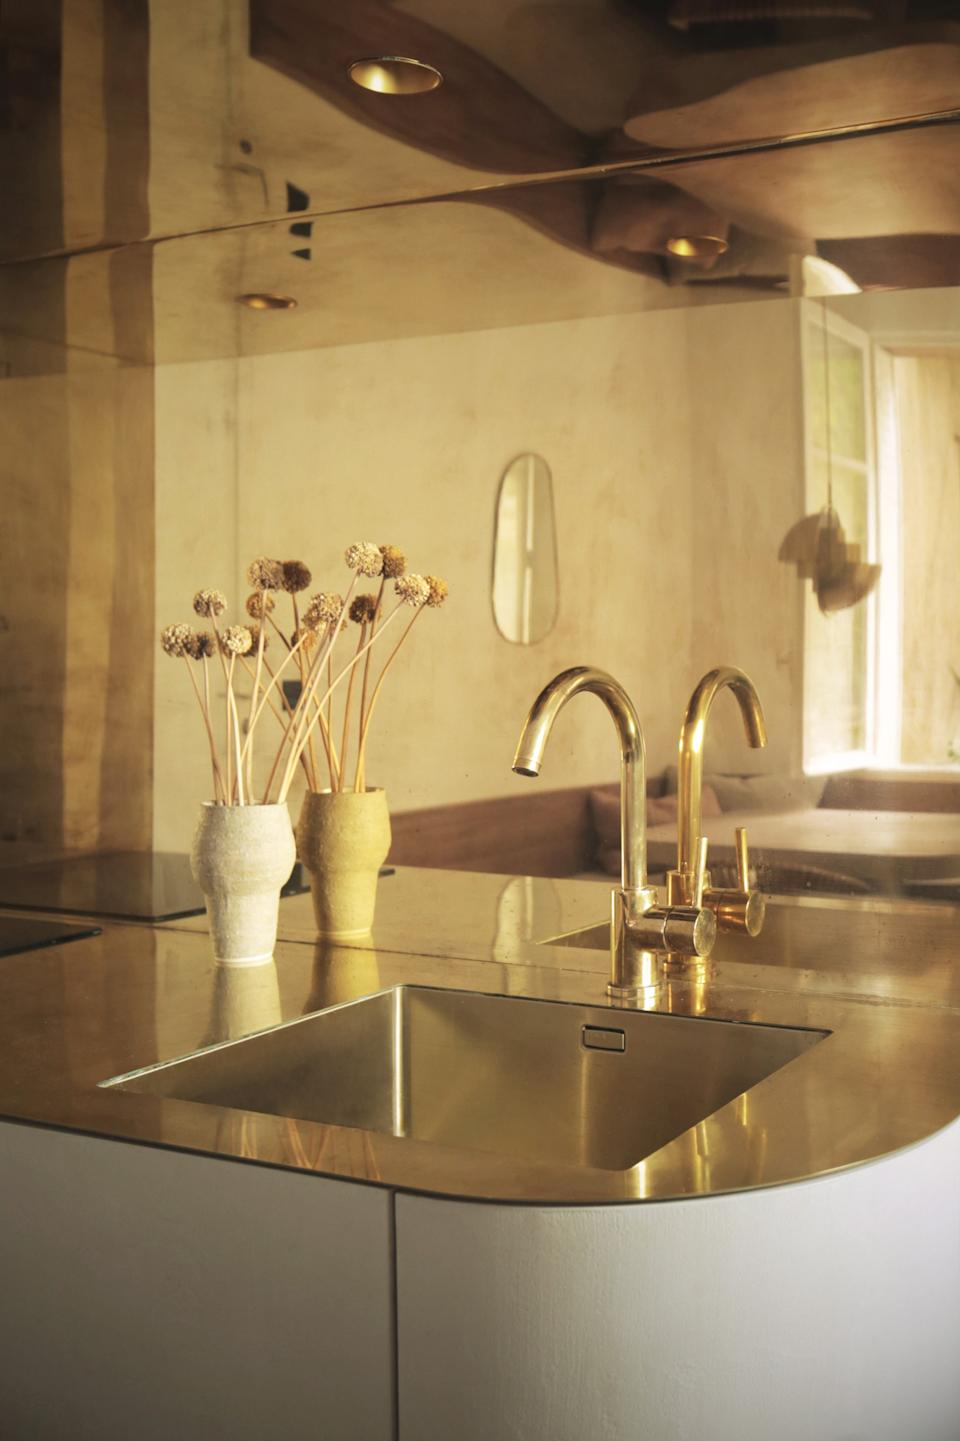 """<div class=""""caption""""> The shiny surface is accessorized with a contrasting matte vase and decor. </div>"""